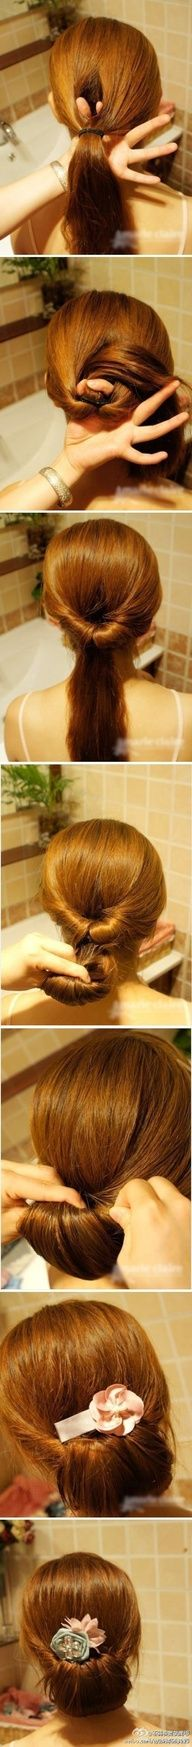 http://laughingidiot.com/cute-baby-9.html  Easy hair updo step by step my-style-if-i-had-the-time-to-care #baby #funny #laughter